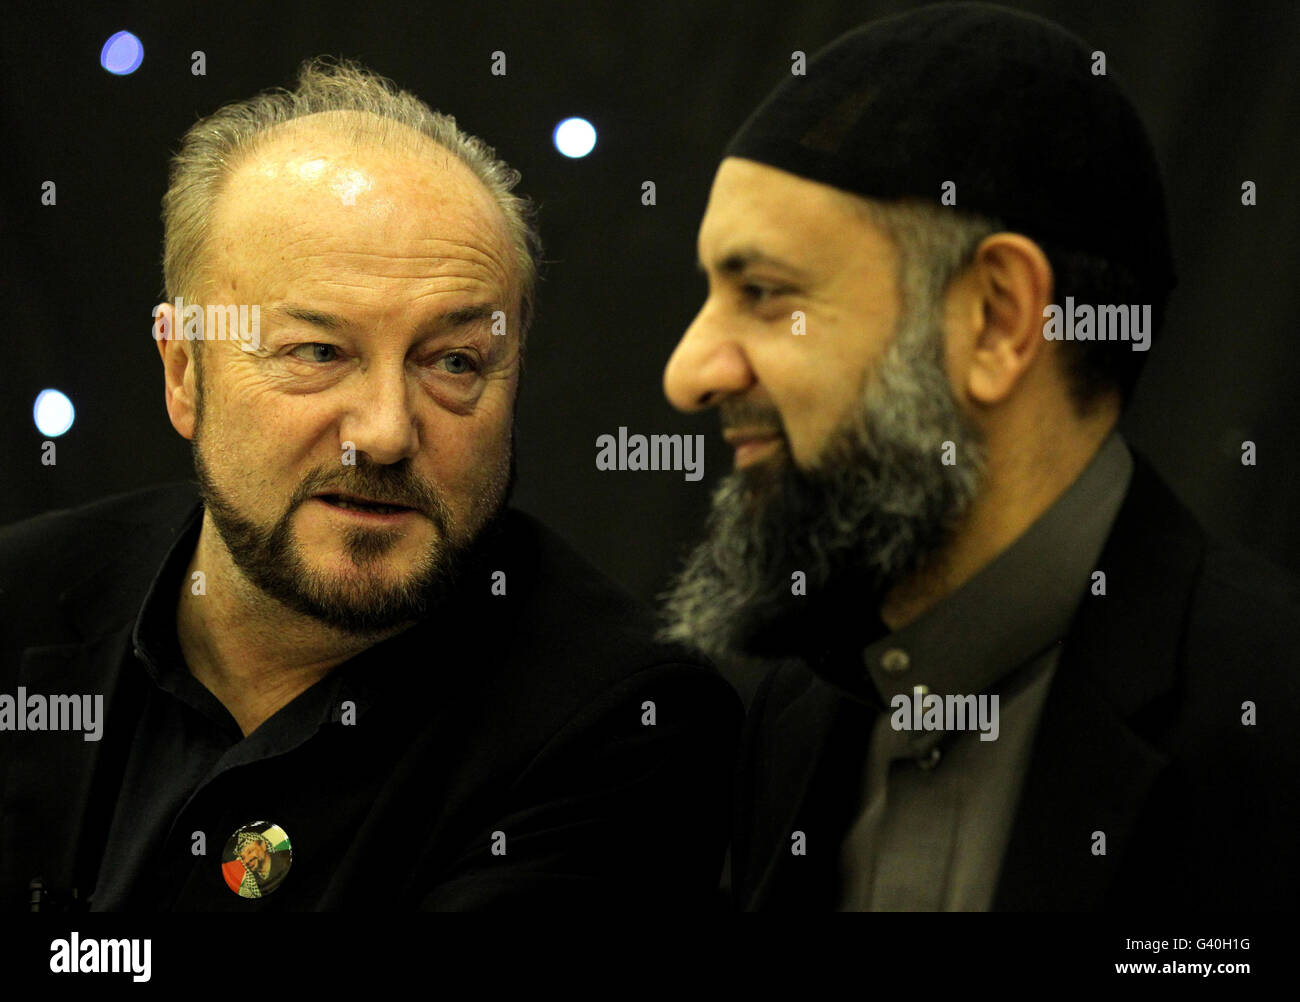 George Galloway mosque visit - Stock Image